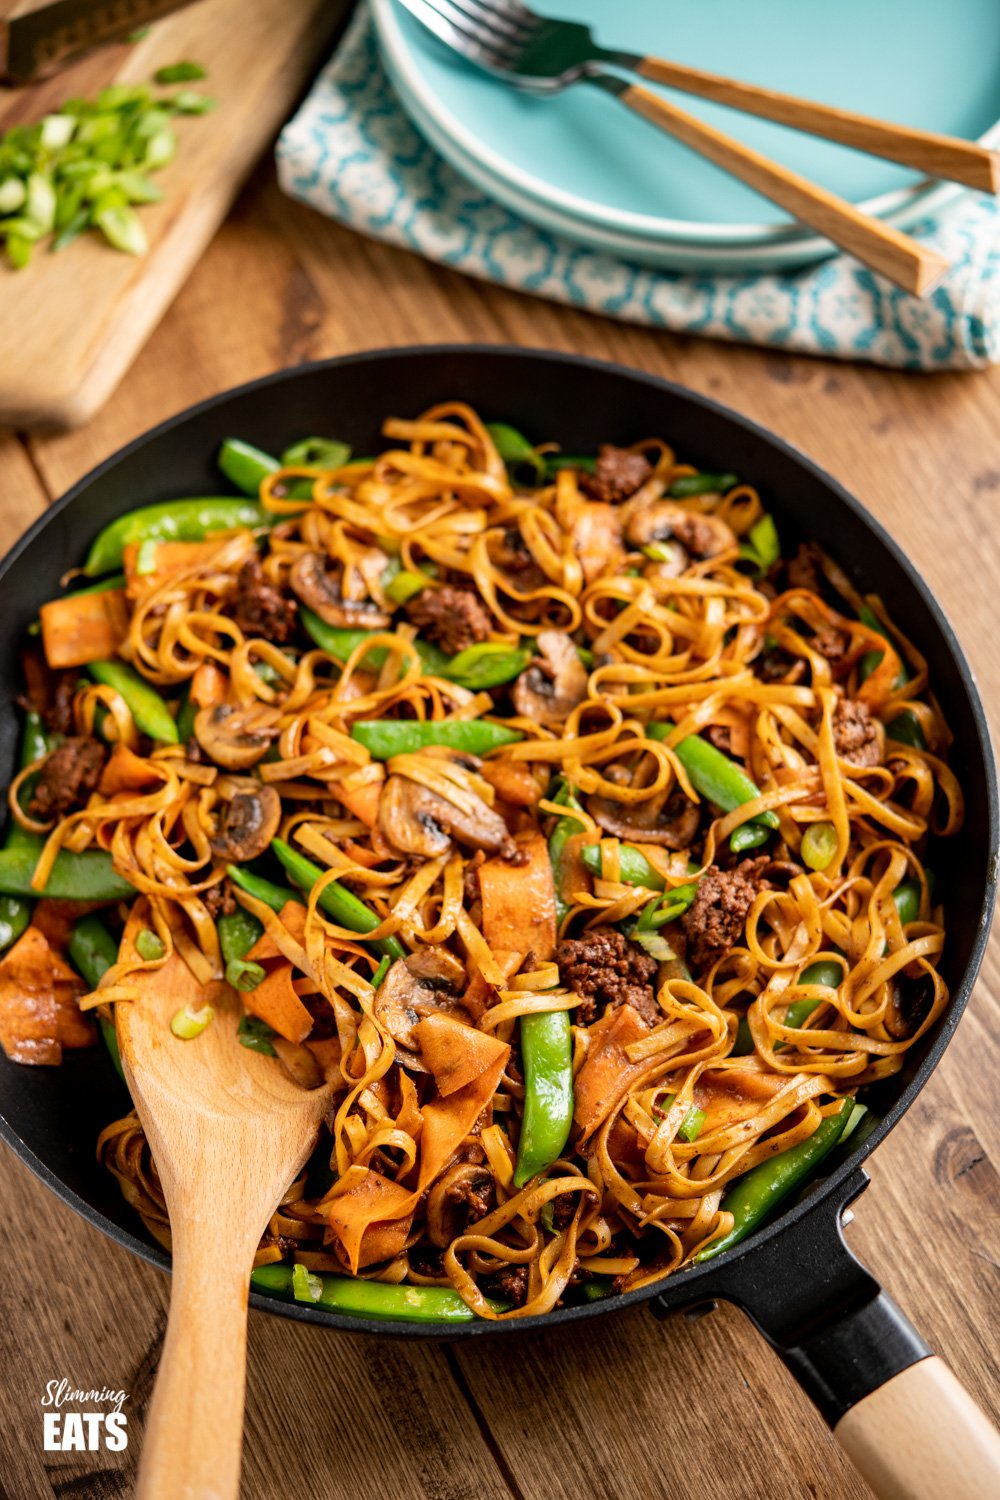 Quick Hoisin Beef Noodle Stir Fry Slimming Eats Slimming World